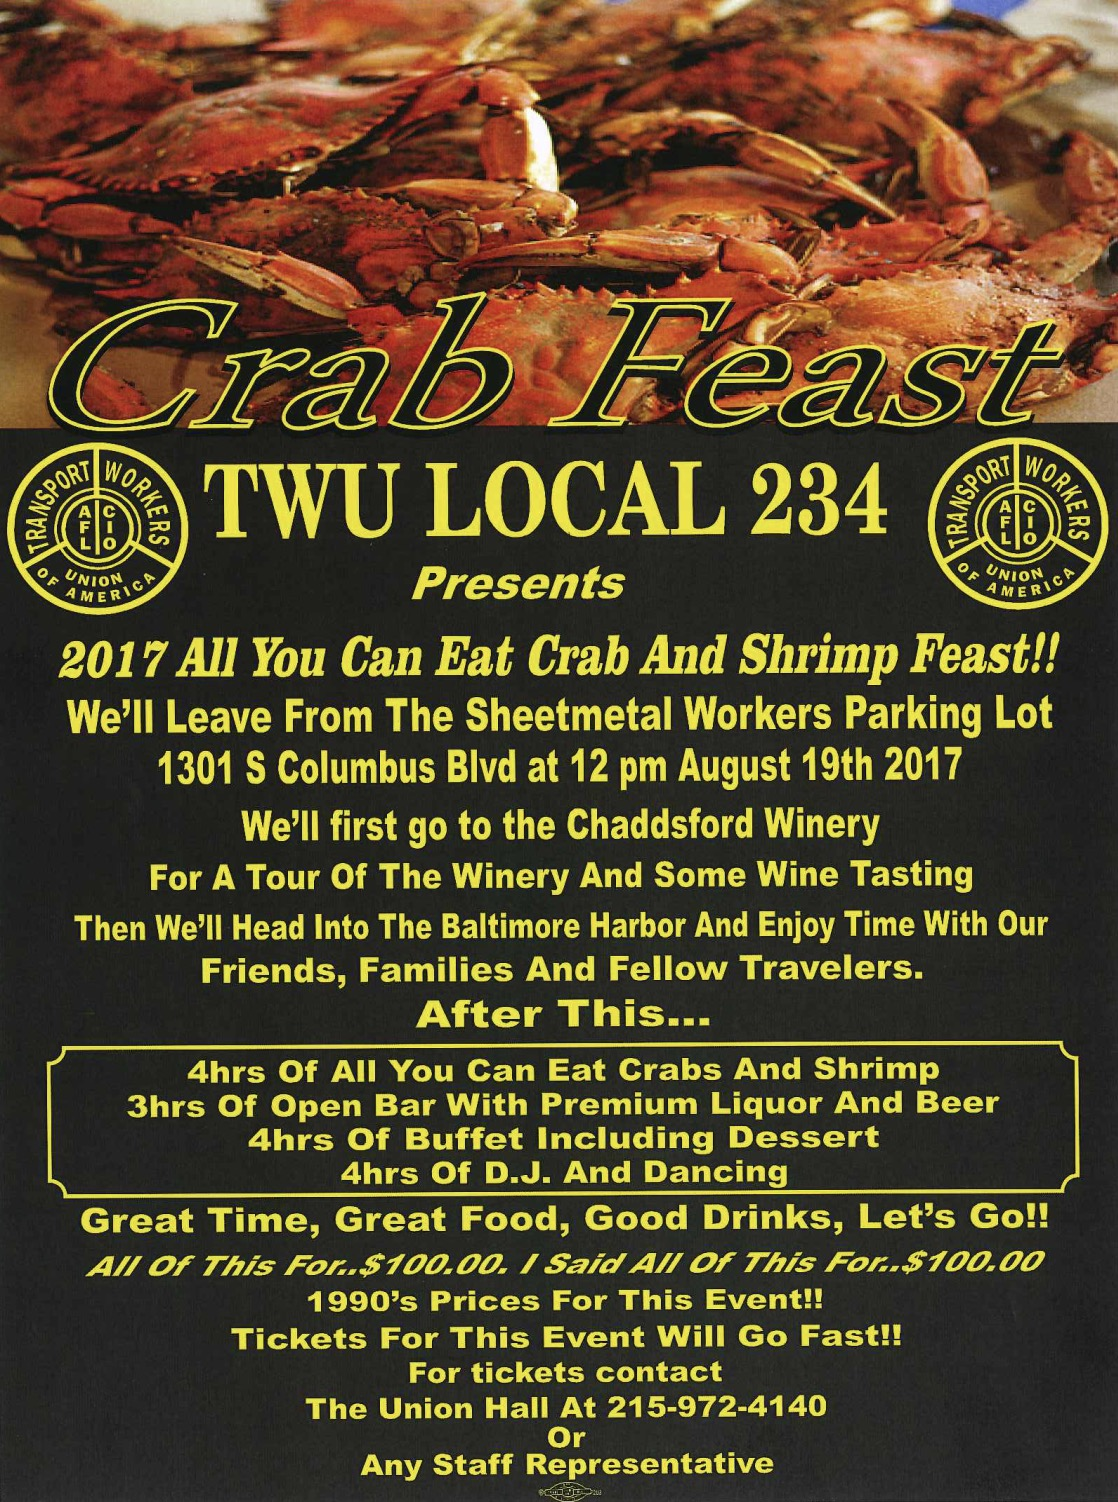 2017 TWU Local 234 Crab Feast